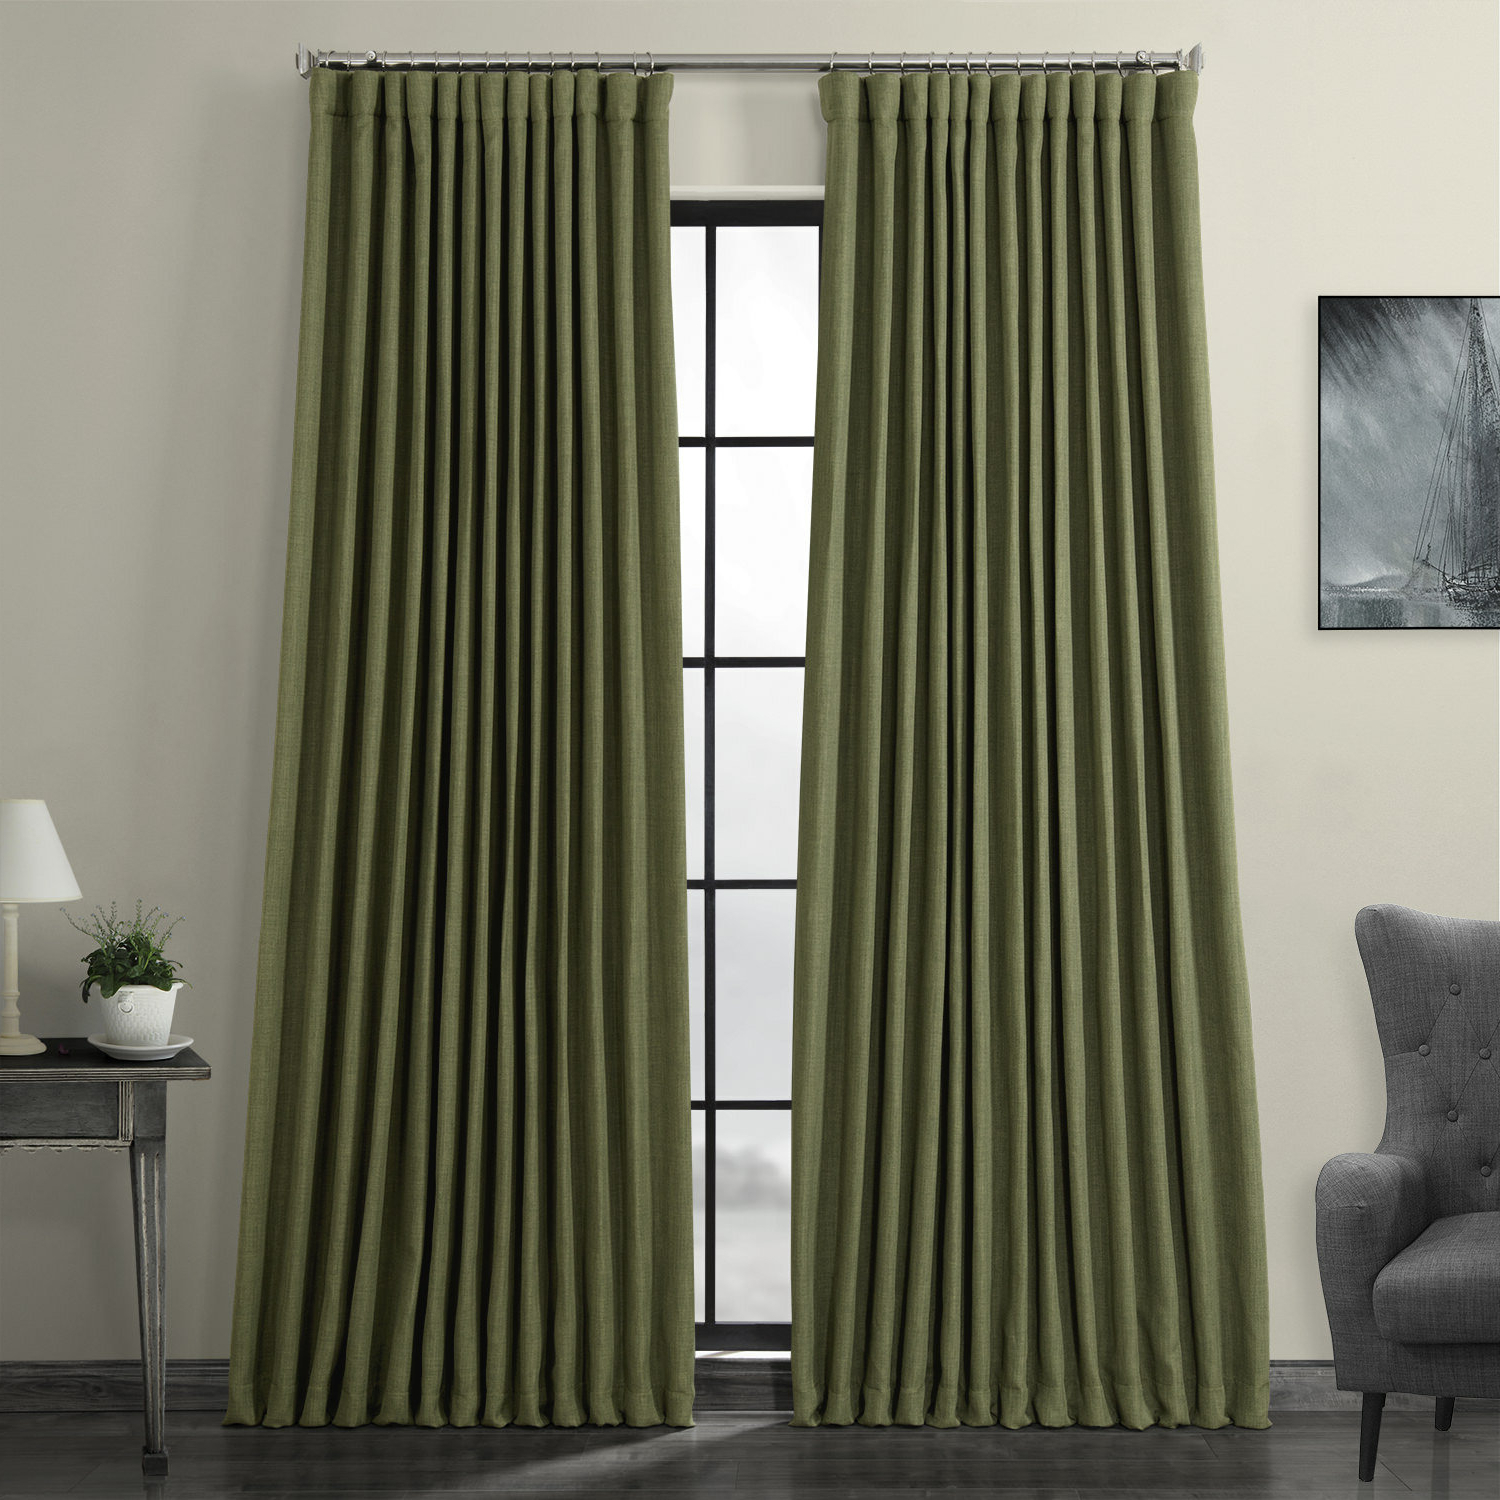 Faux Linen Blackout Curtains Regarding Well Known Waubun Faux Linen Extra Wide Solid Color Blackout Rod Pocket Single Curtain Panel (View 15 of 20)